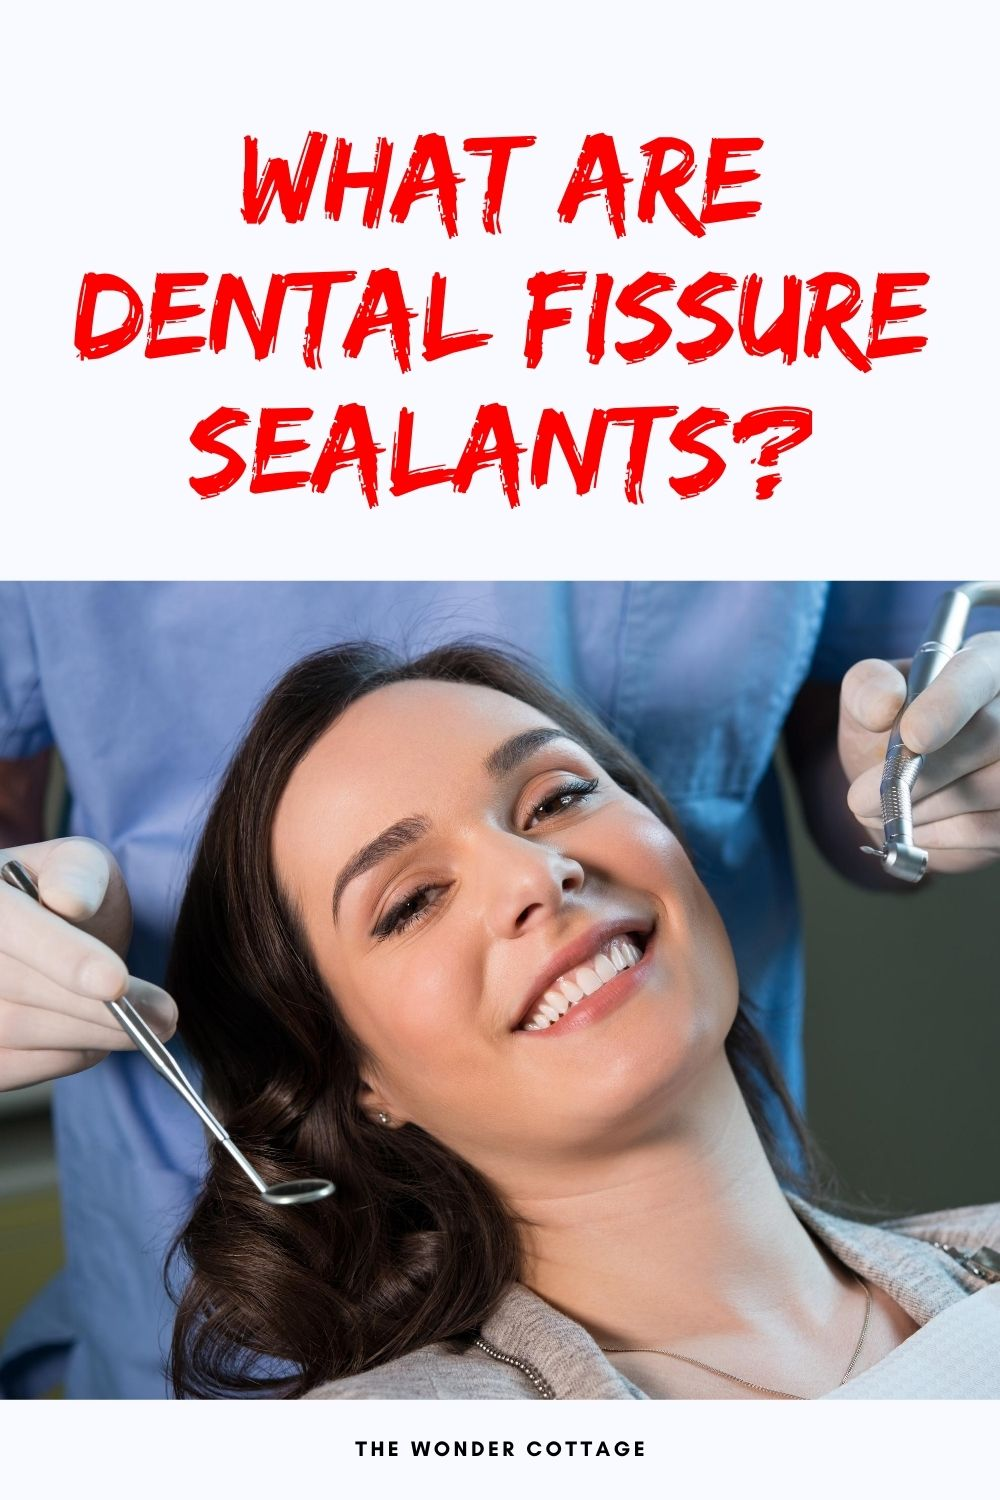 what are dental fissure sealants?